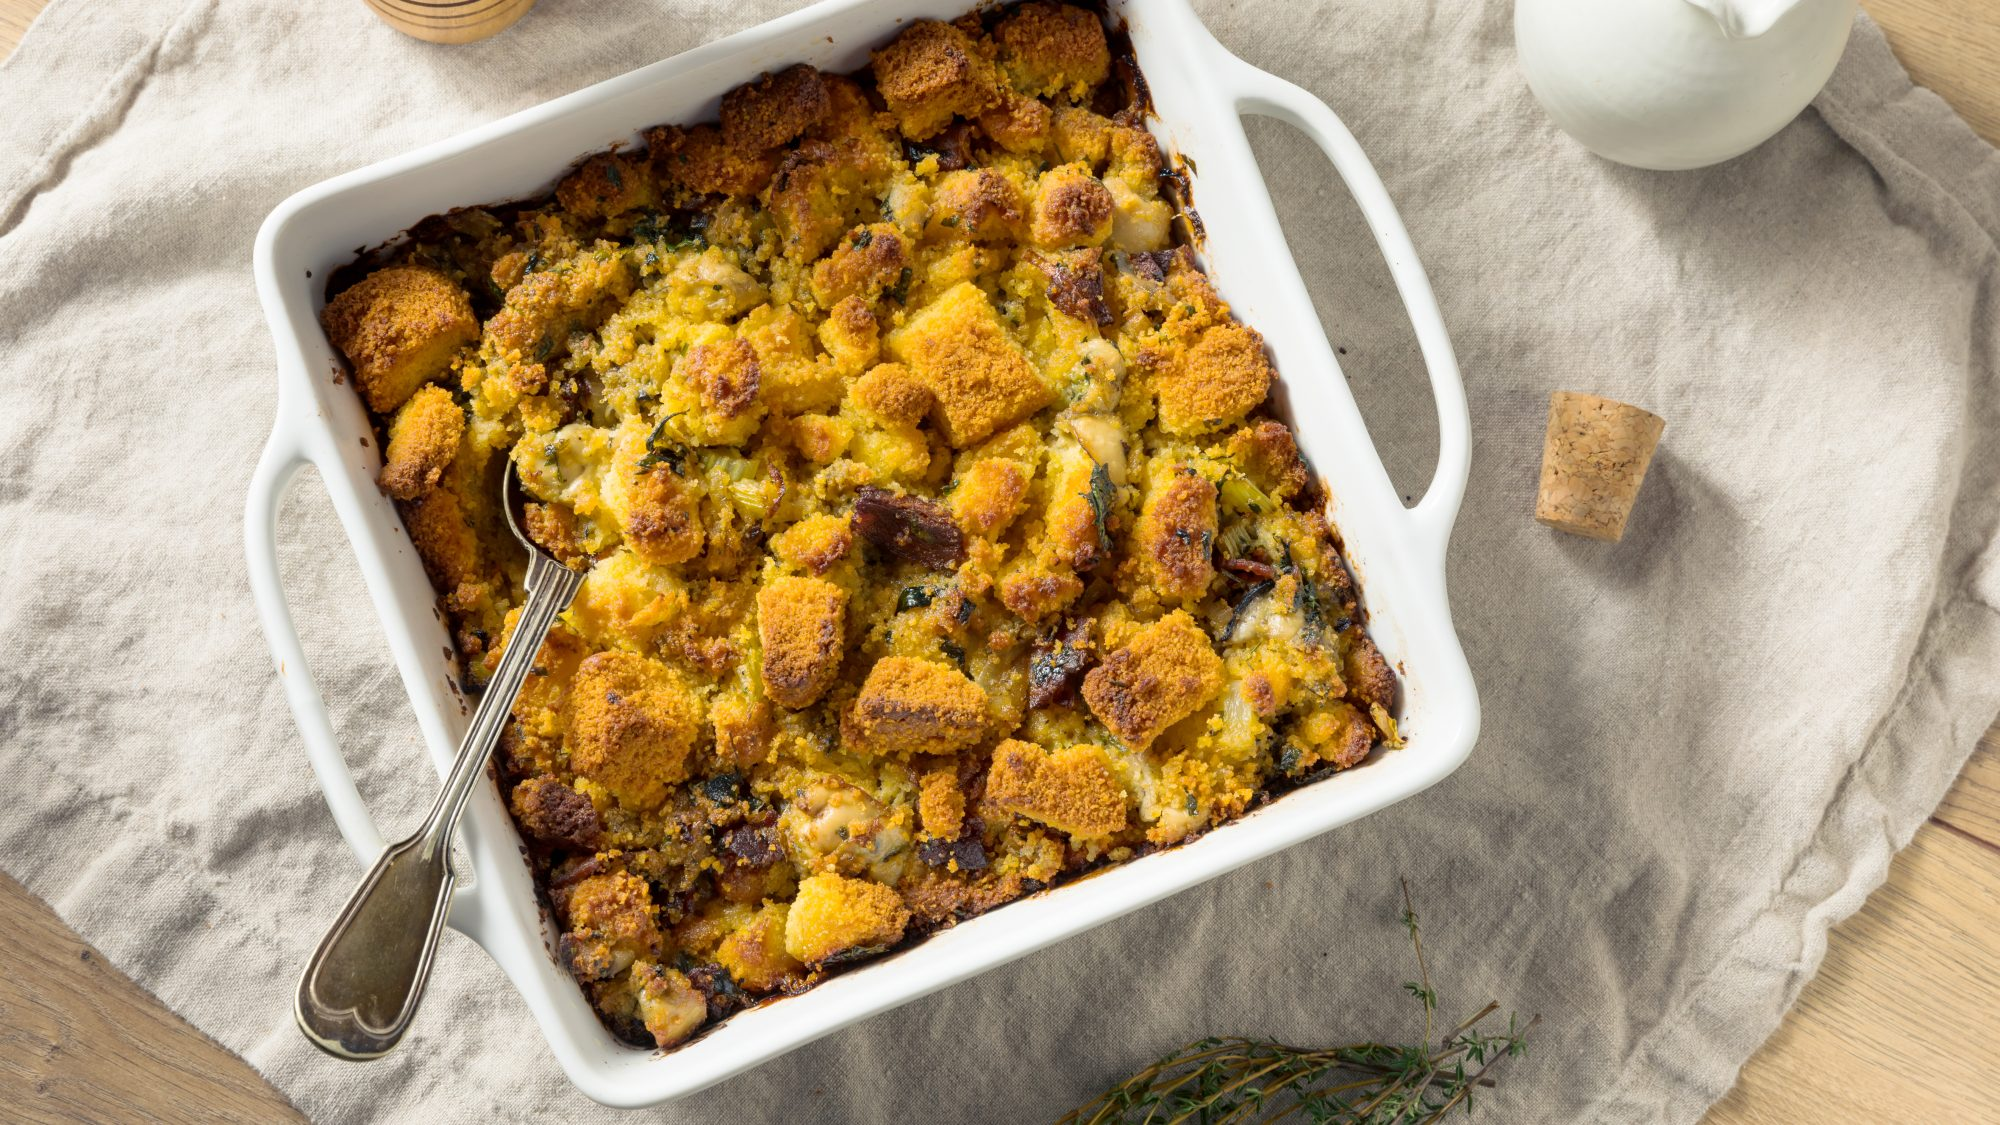 Vegetarian stuffing or dressing - tips and advice for cooking meatless vegetarian stuffing